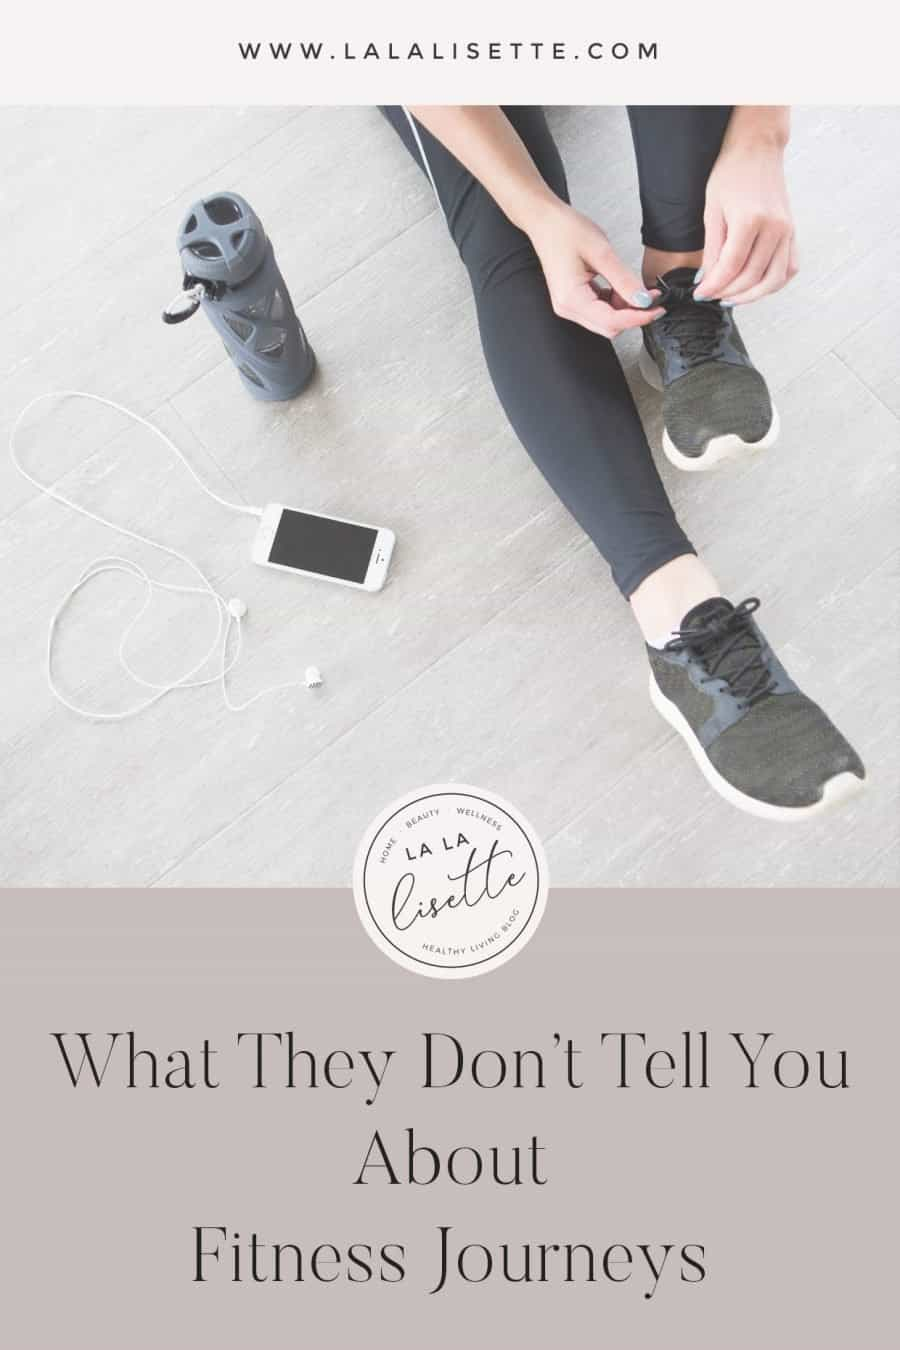 What They Don't Tell You About Fitness Journeys